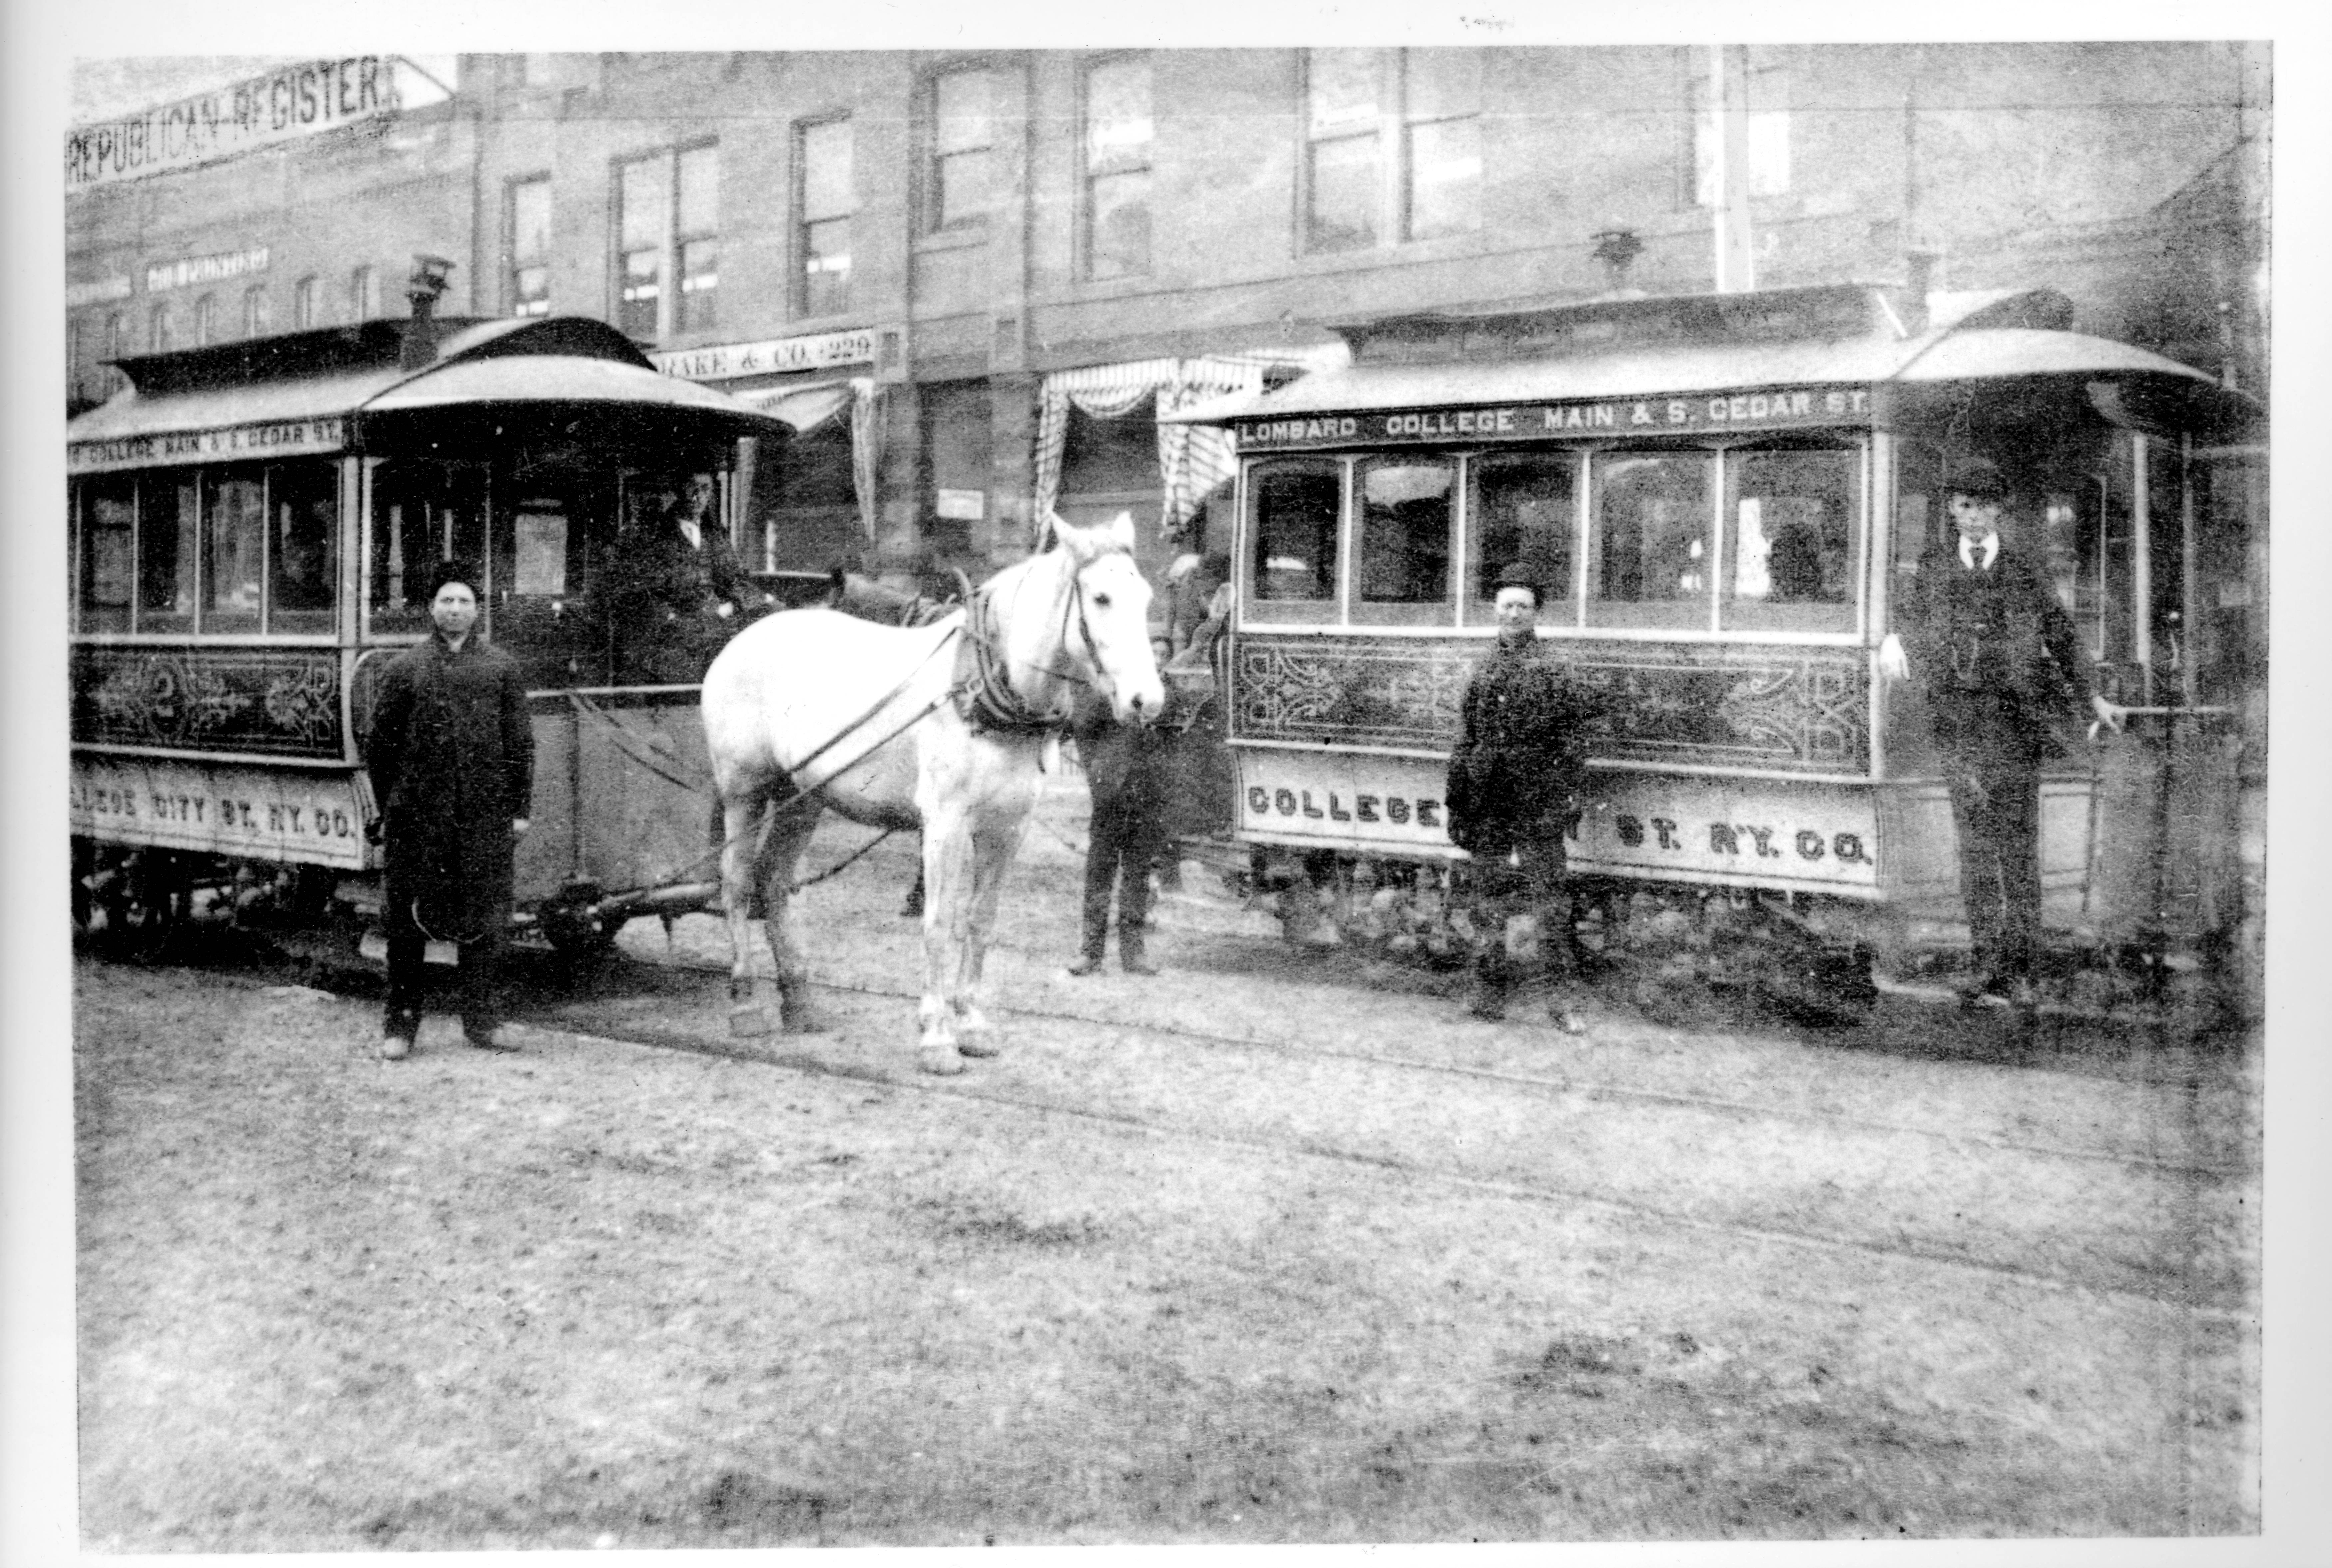 Horse-drawn Streetcars - Courtesy of Galeburg Public Library